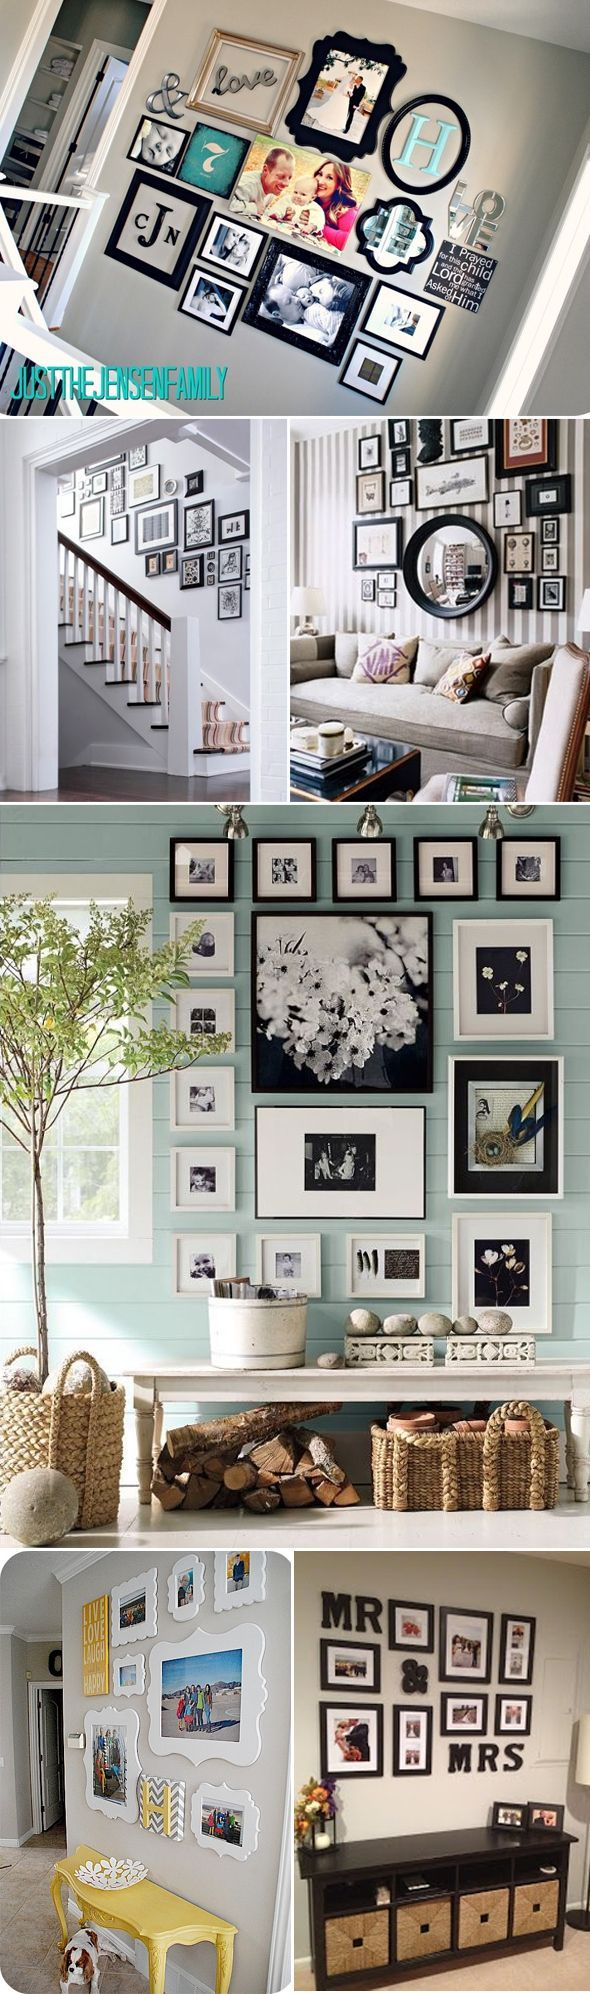 Best 25 wall collage ideas on pinterest picture wall picture ideias de disposio de fotosquadros na parede unique ways of displaying photographs in your amipublicfo Images